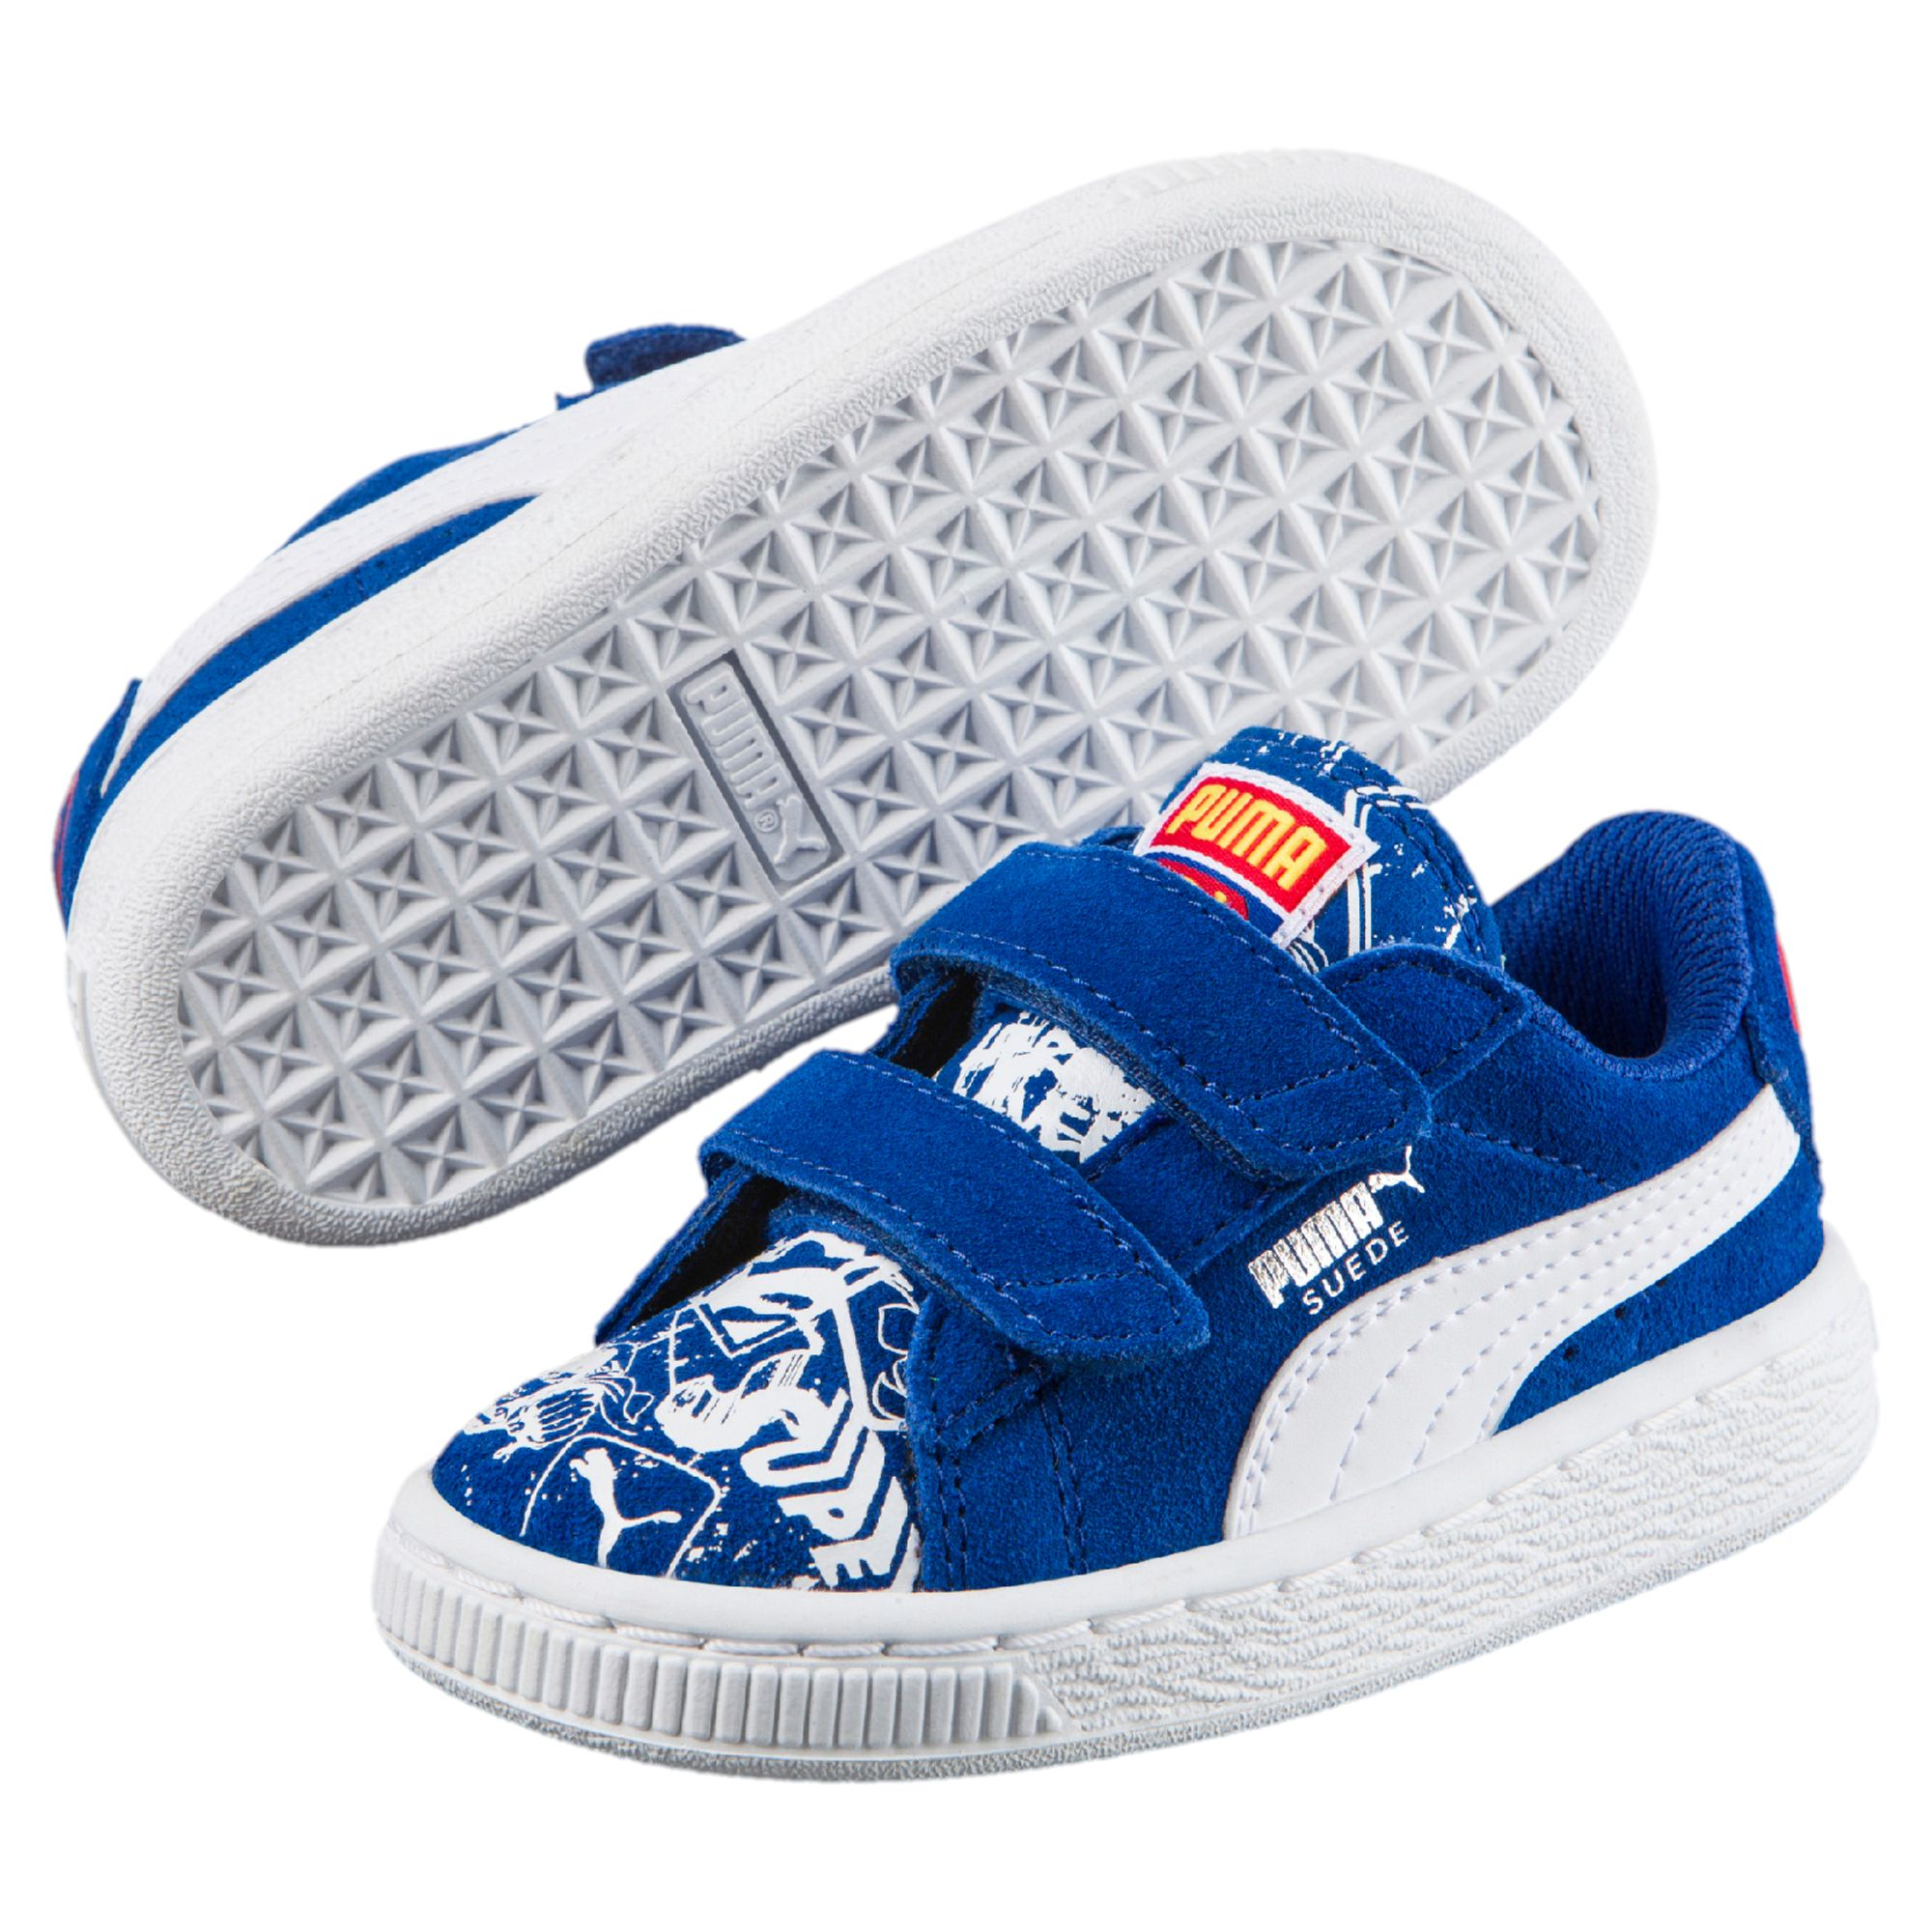 48d417852e7d PUMA Suede Superman™ Street Baby Trainers Kids Low Boot Unisex New ...